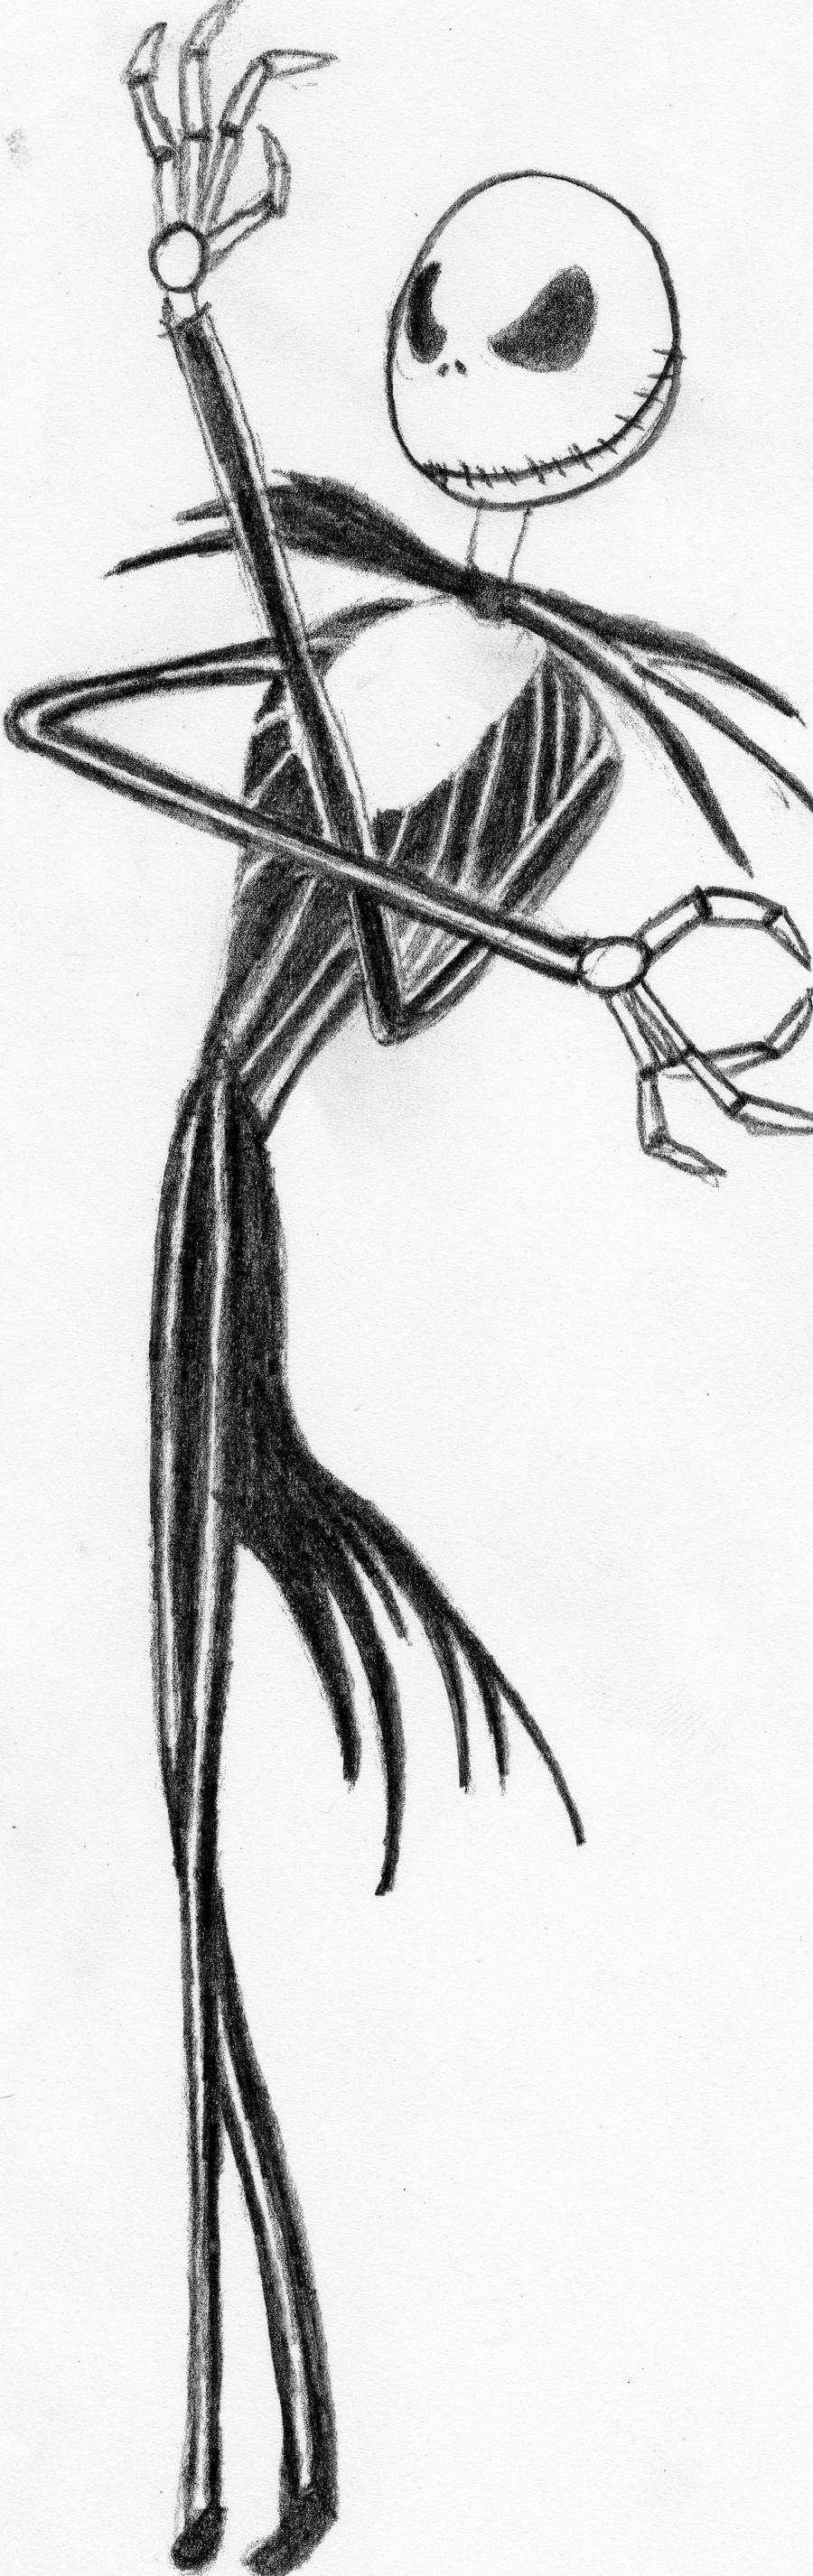 Jack skellington colouring pages page 2 - Nightmare Before Christmas Coloring Pages Jack Nightmare Before Christmas Coloring Page